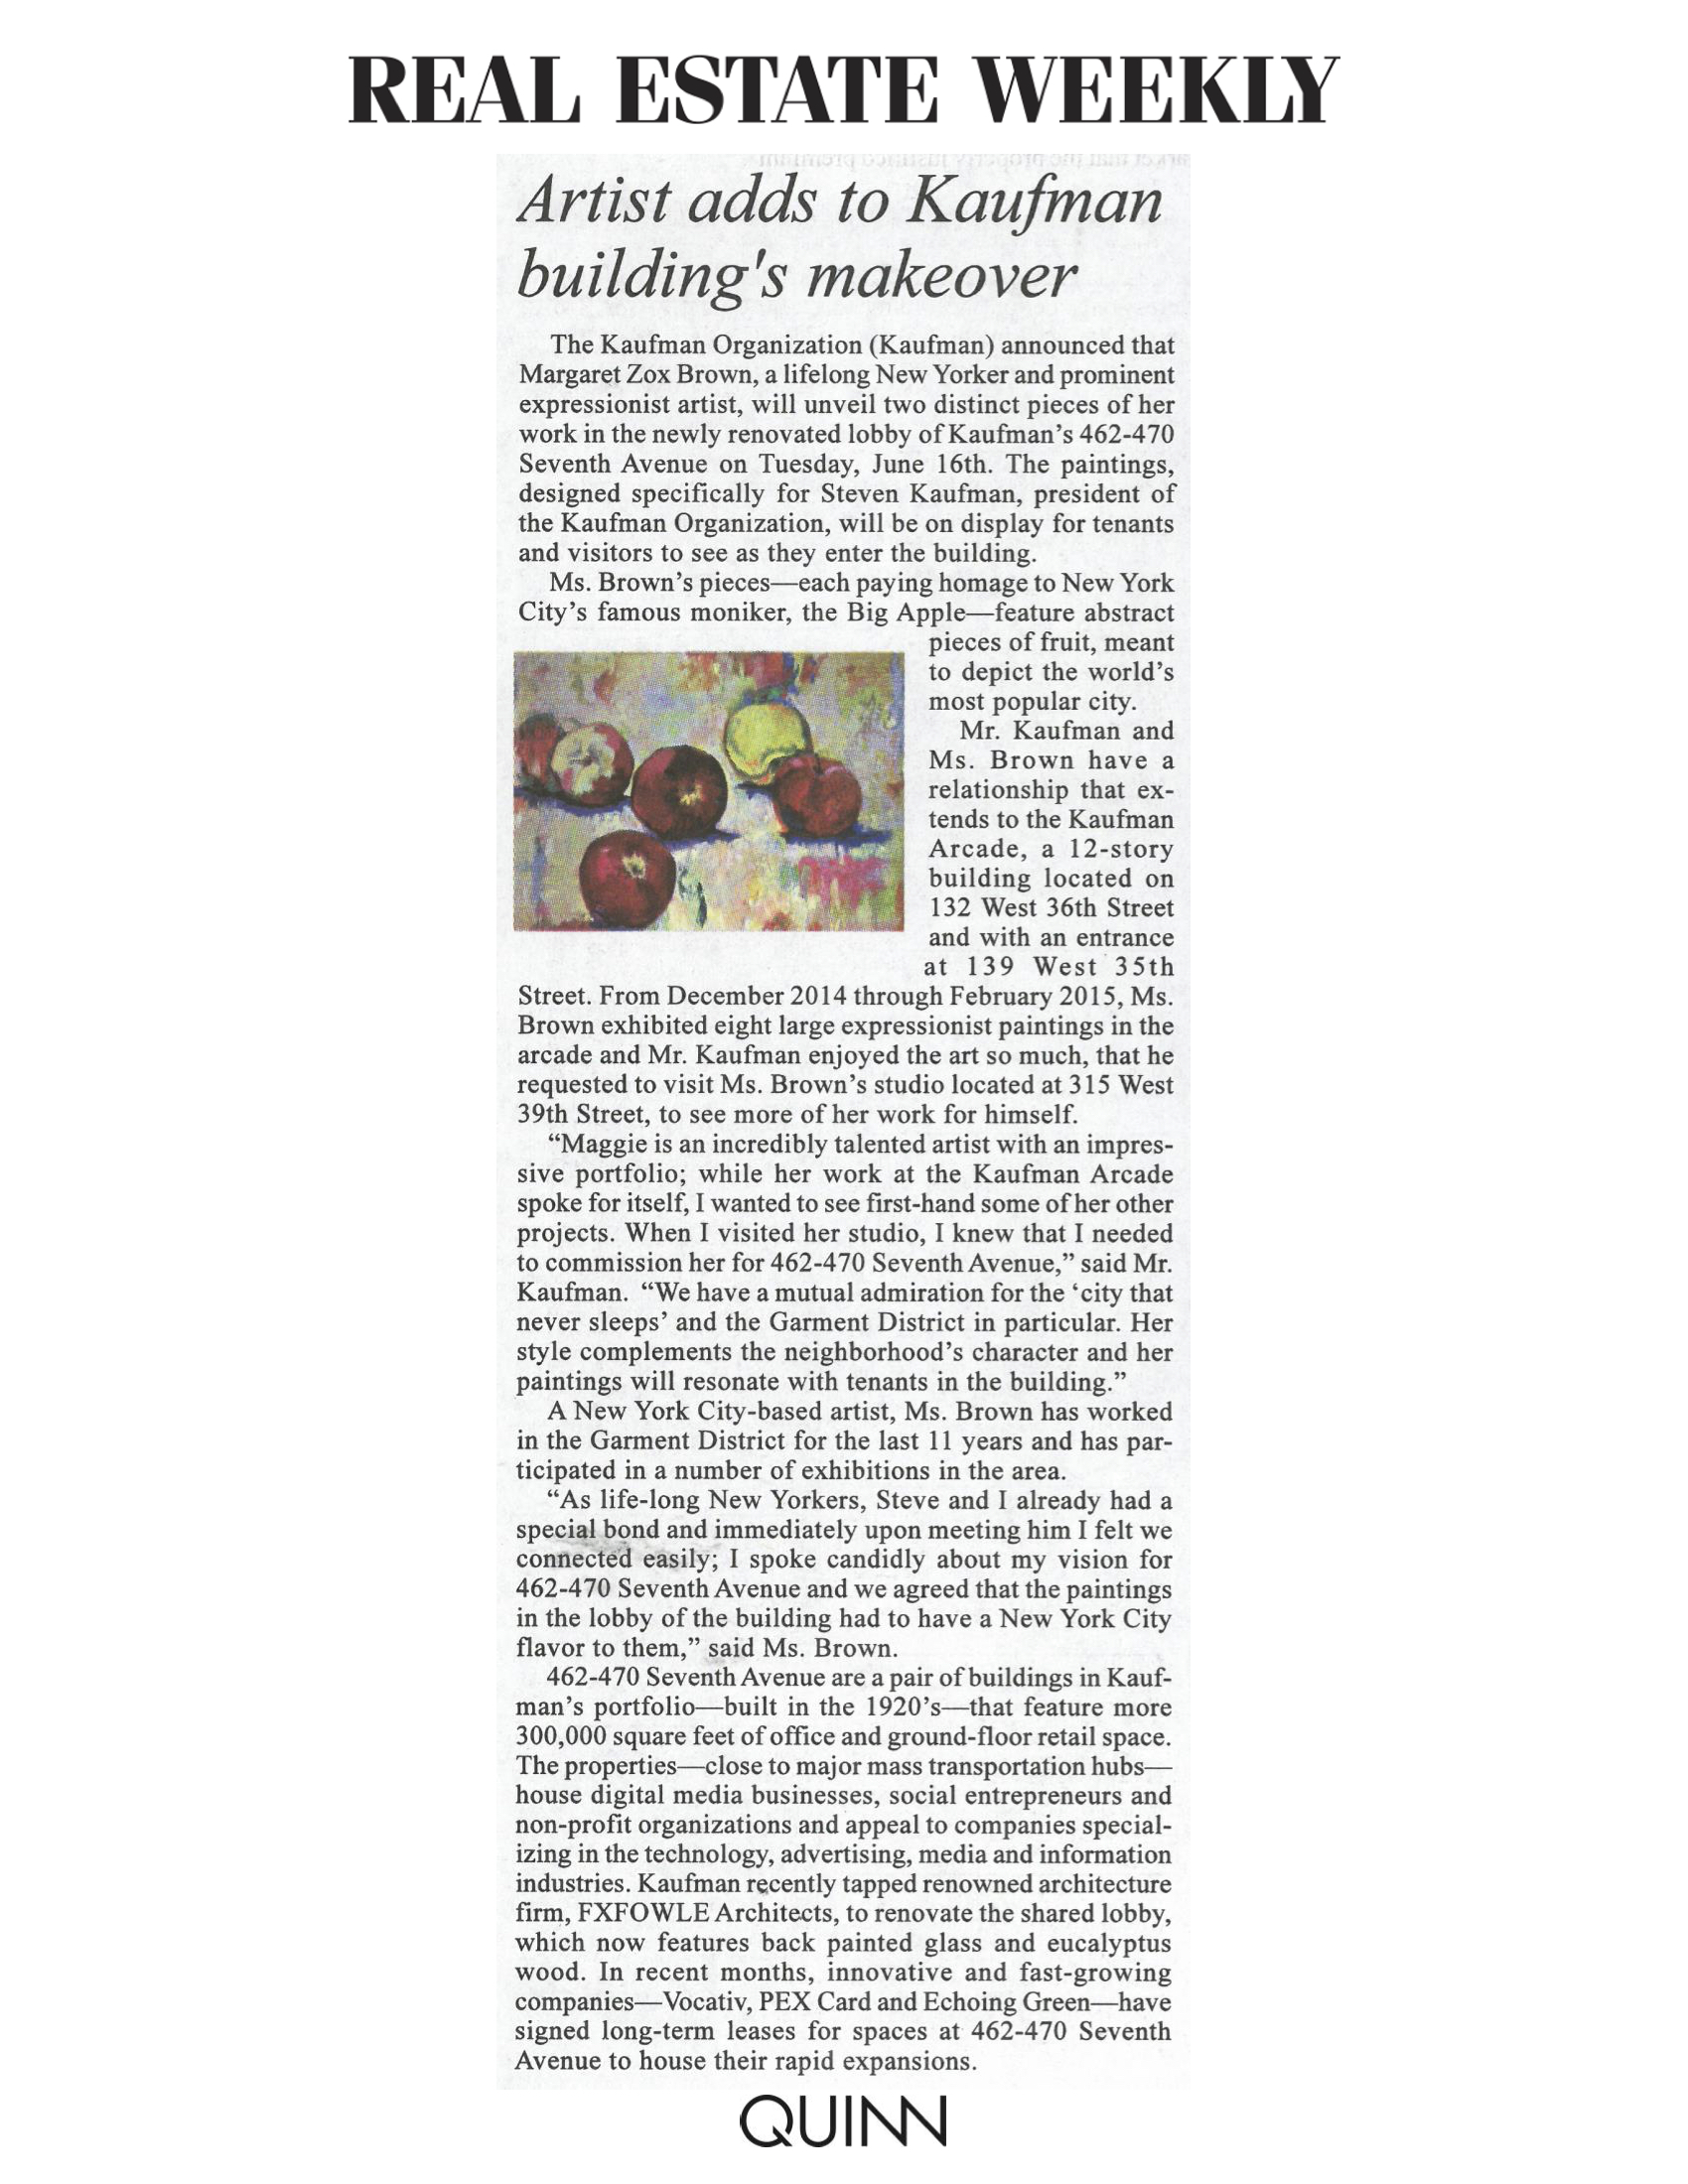 Real Estate Weekly, Artist Adds to Kaufman building's makeover,  6.10.15.jpg